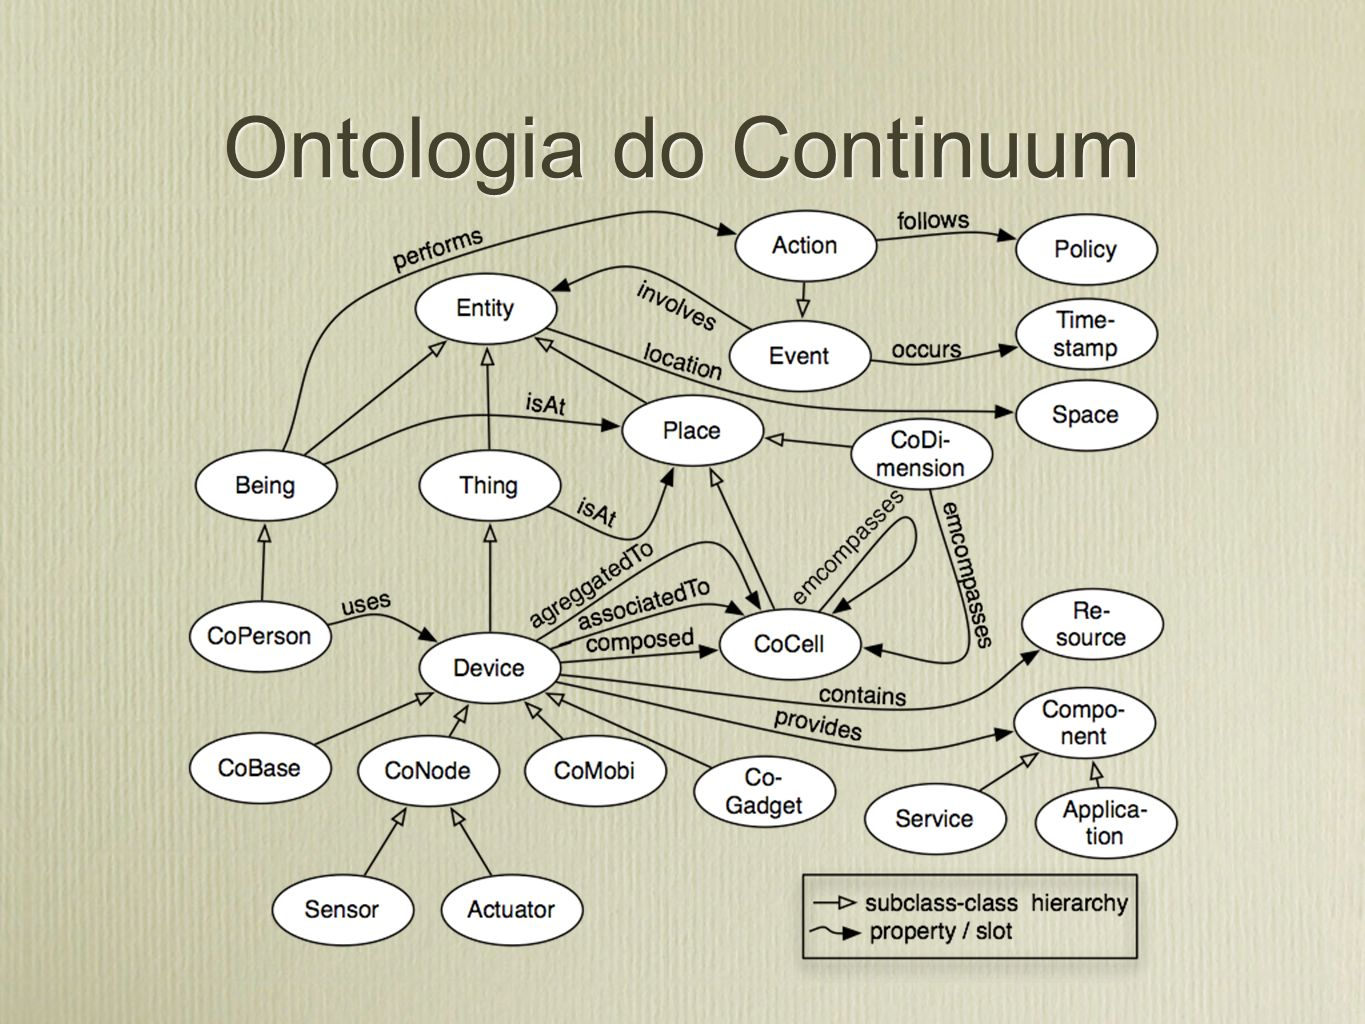 Ontologia do Continuum